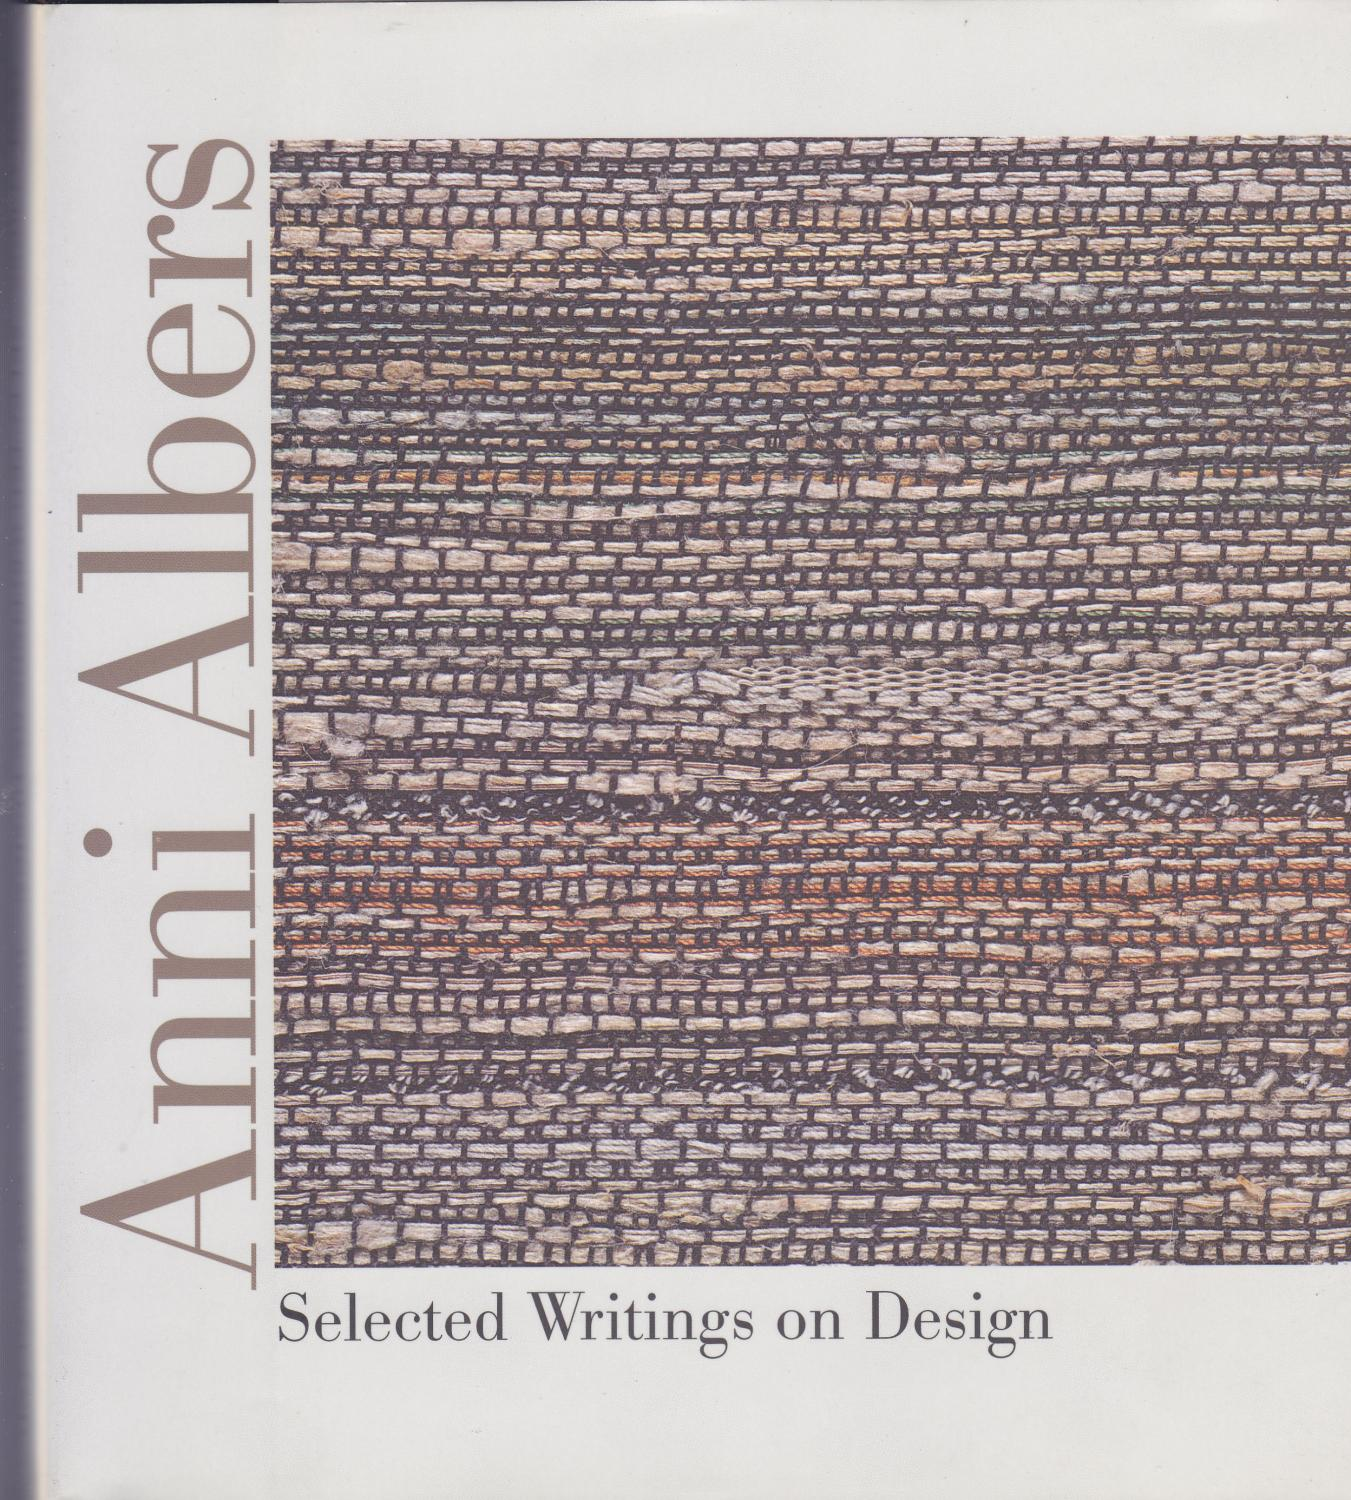 Selected Writings on Design - Anni Albers